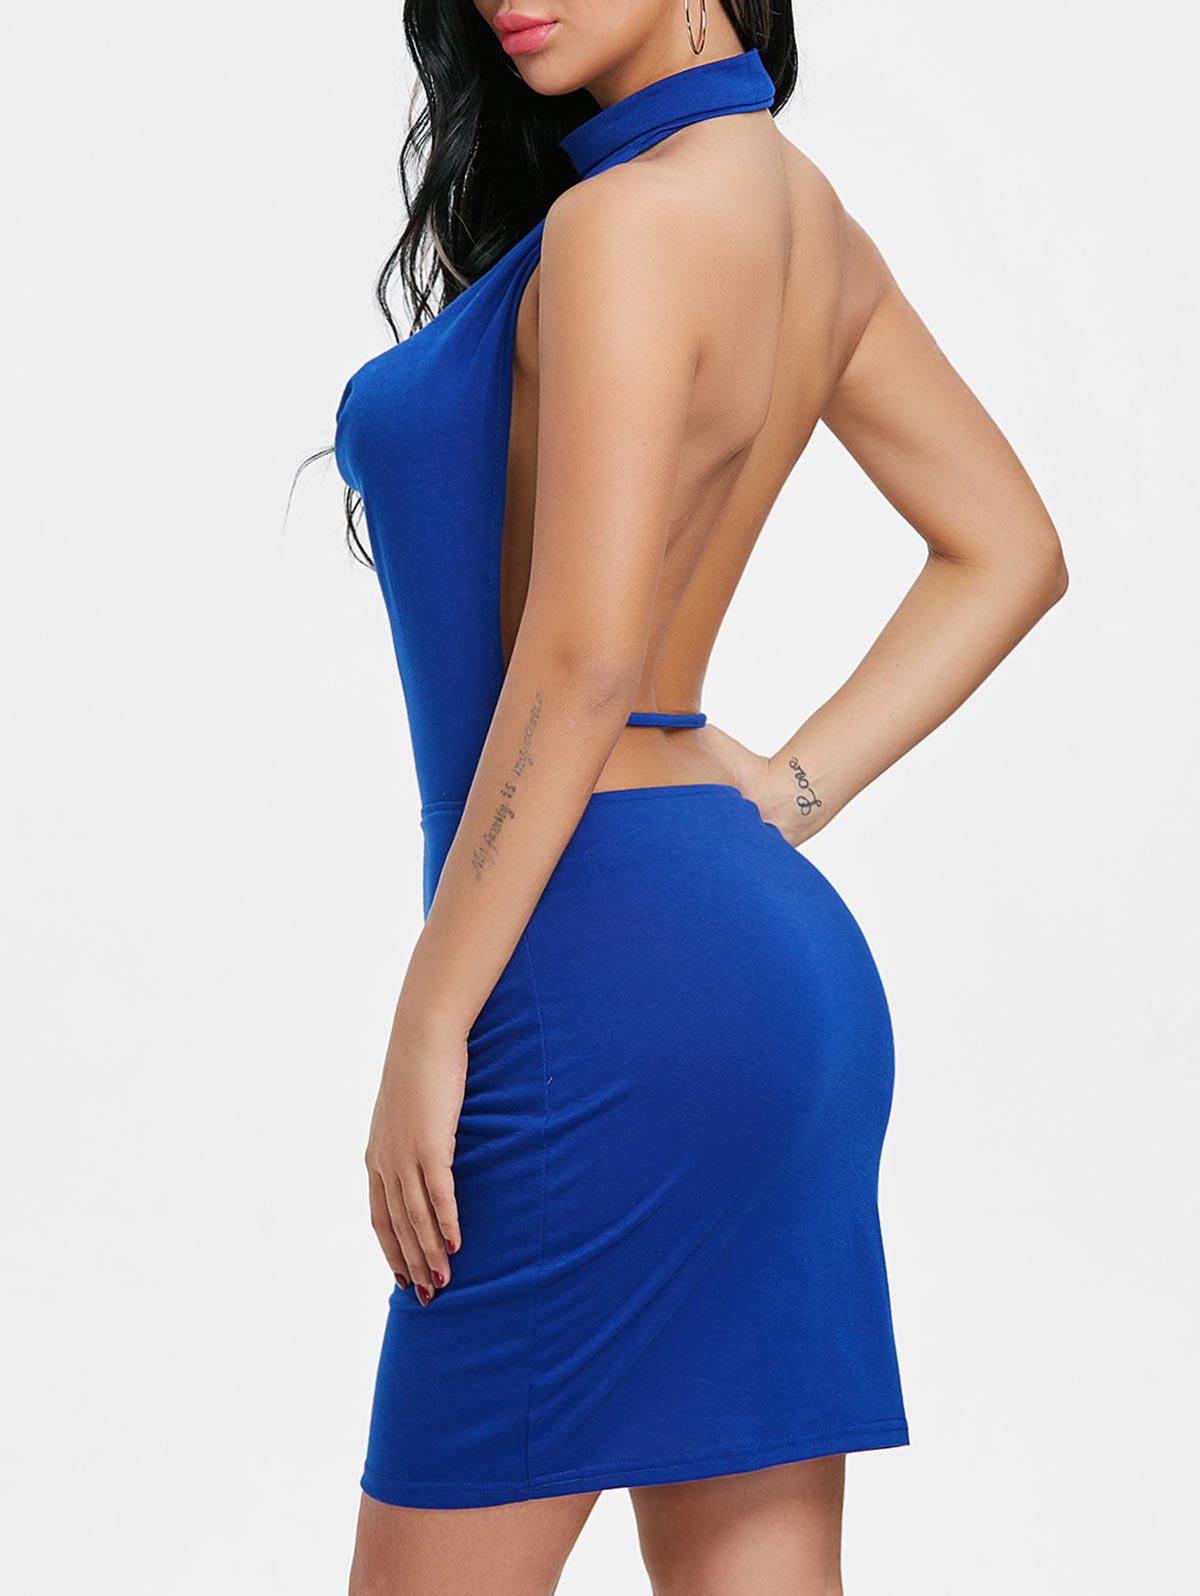 Backlesss Draped Halter Neck Dress with Choker - BLUE M